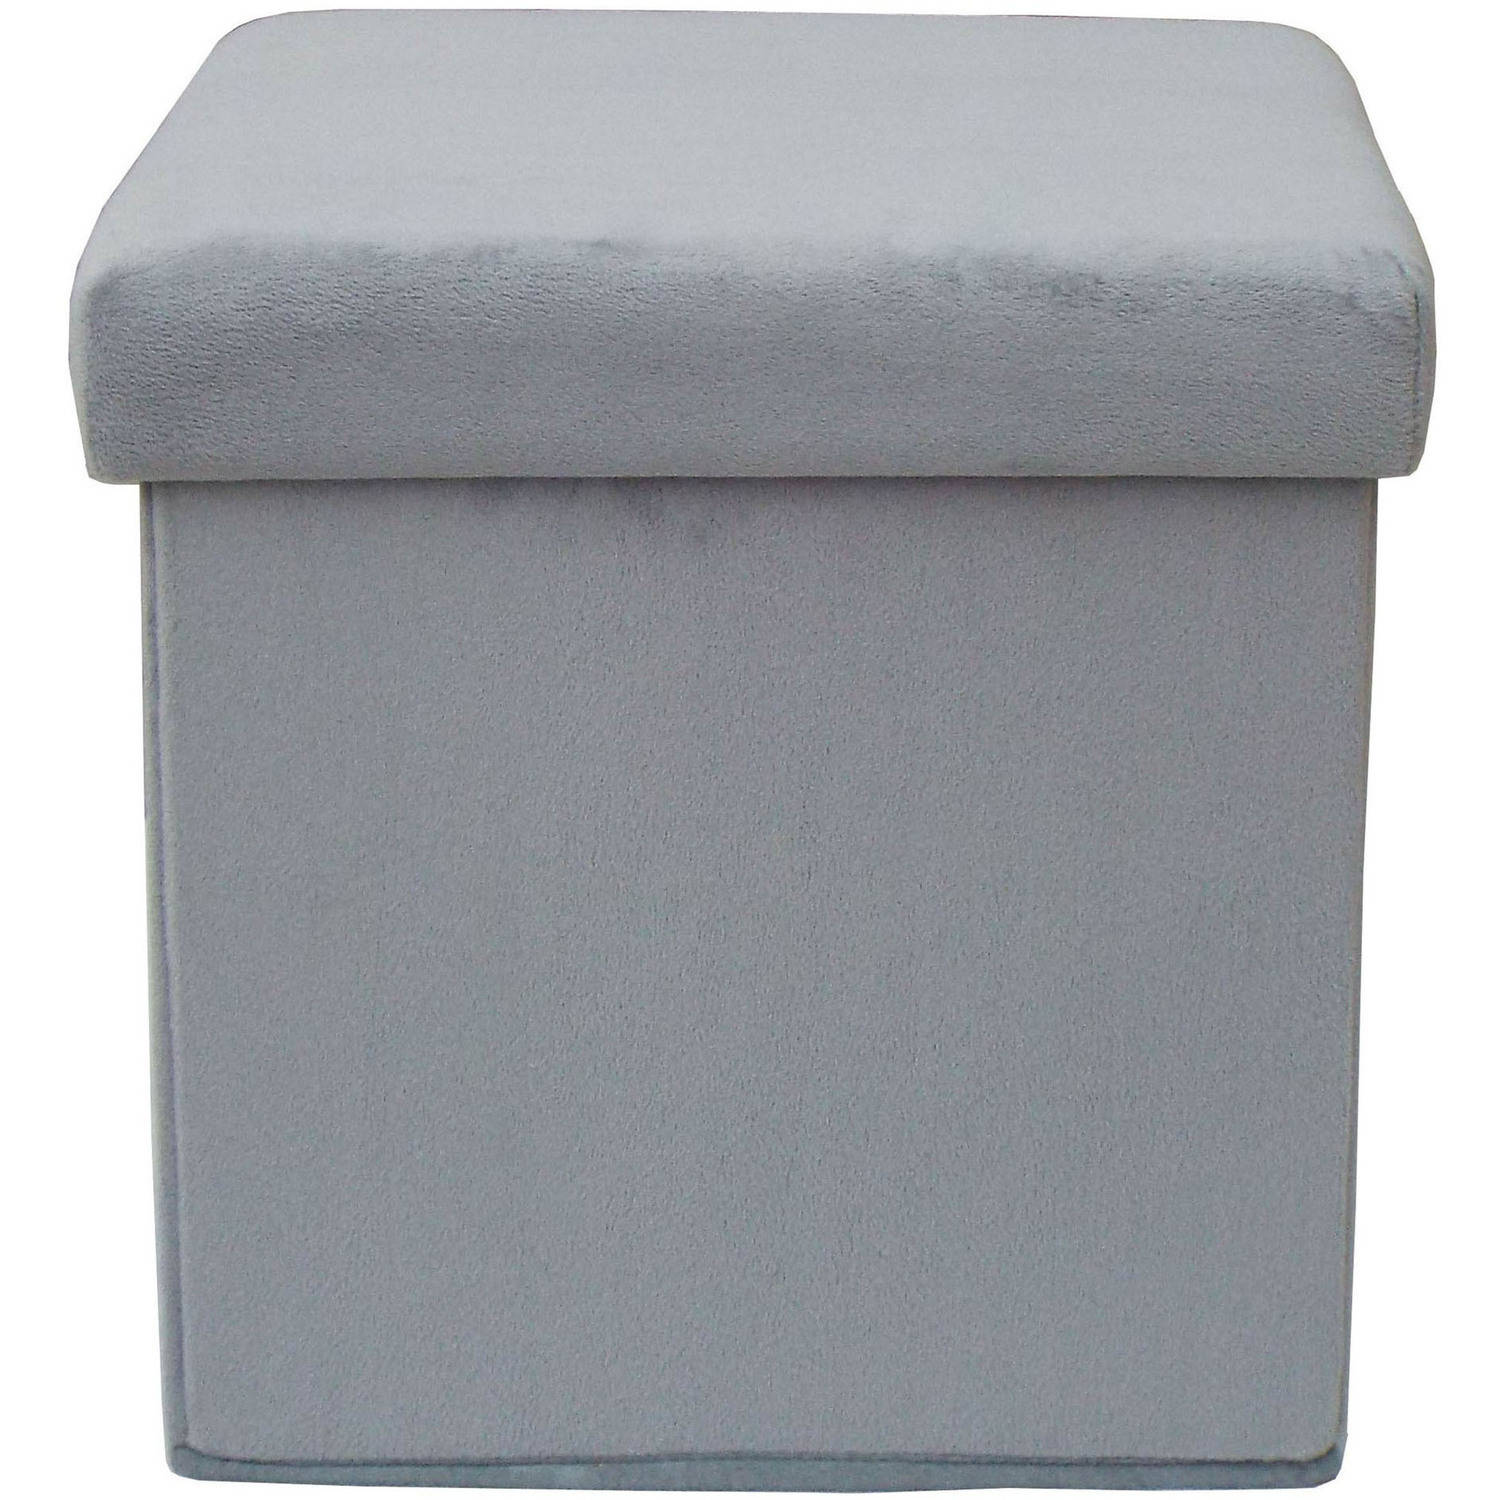 Cube Ottomans with Storage | Padded Ottoman with Storage | Storage Cube Ottoman